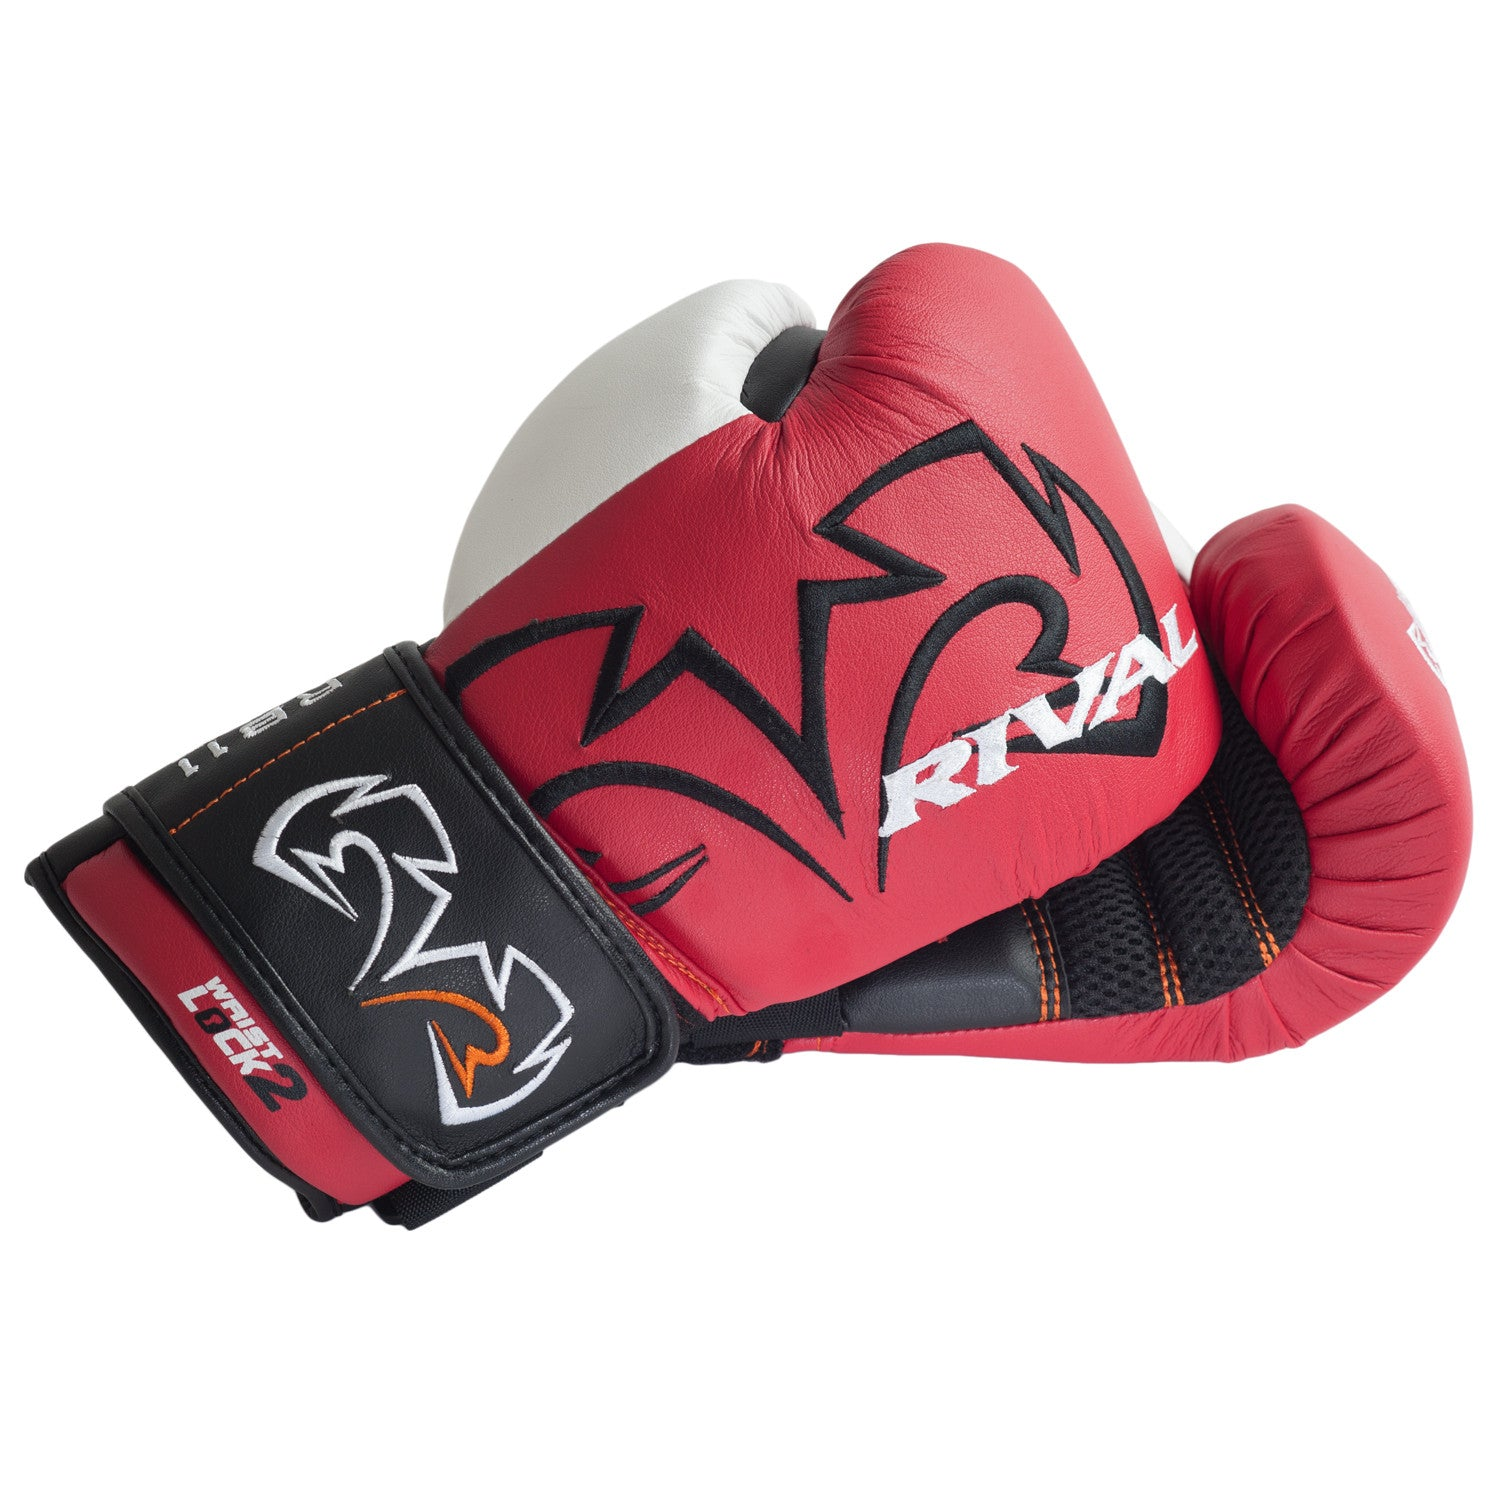 Evo Fitness Boxing Gloves Review: Rival Boxing RB11-Evolution Bag Gloves